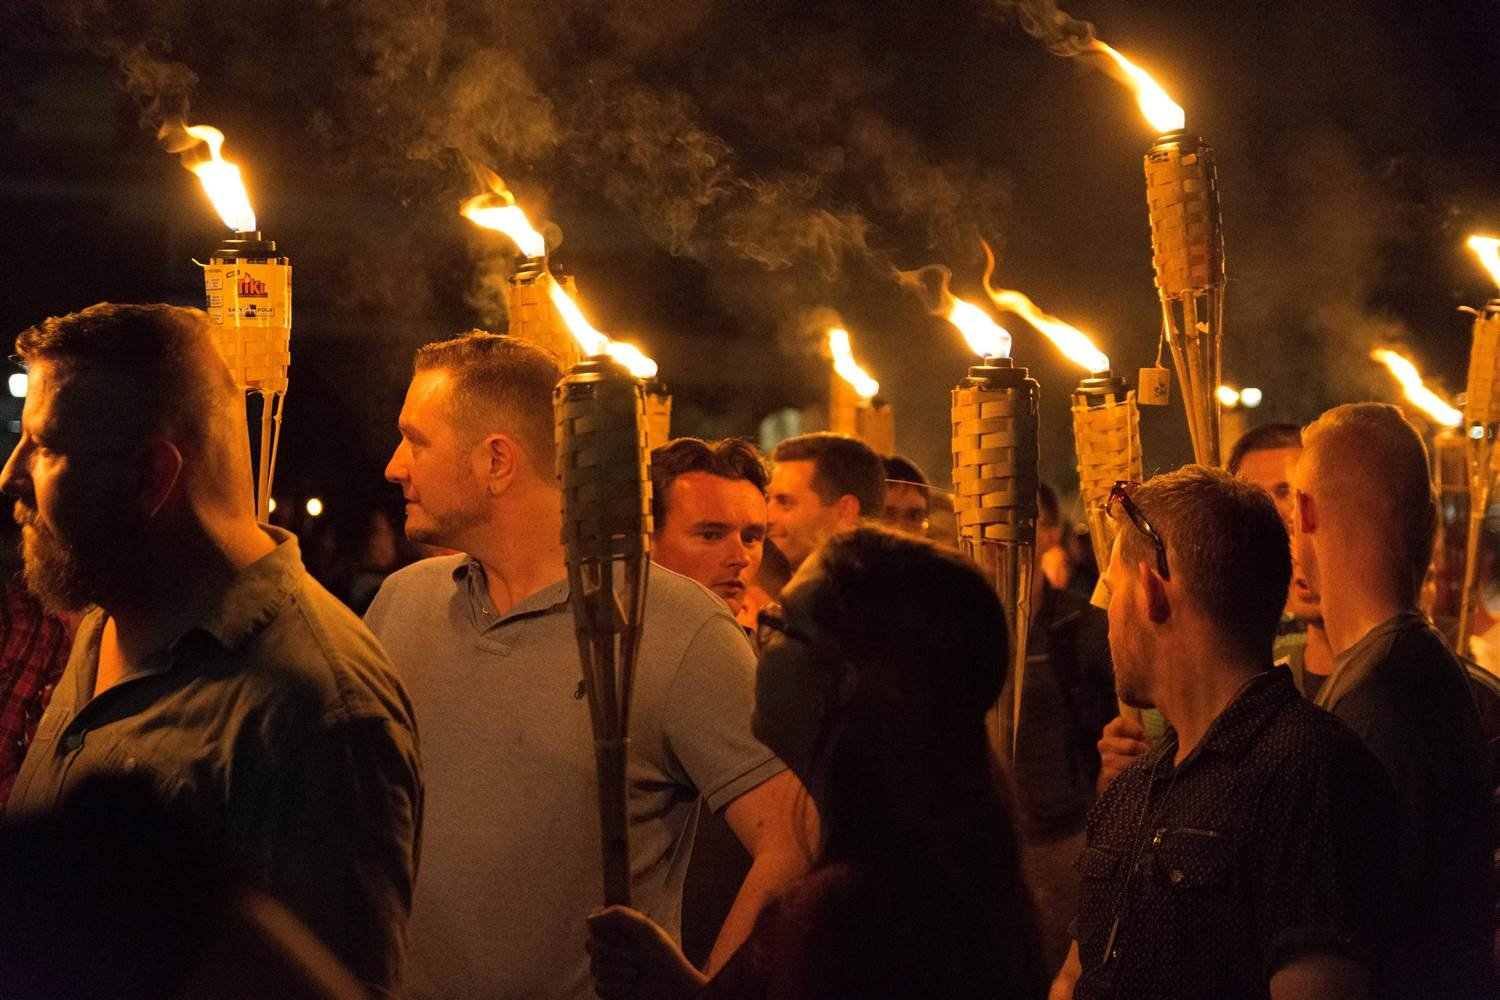 White nationalists carry torches on the grounds of the University of Virginia on the eve of a planned Unite The Right rally in Charlottesville on Friday. (STRINGER / Reuters)